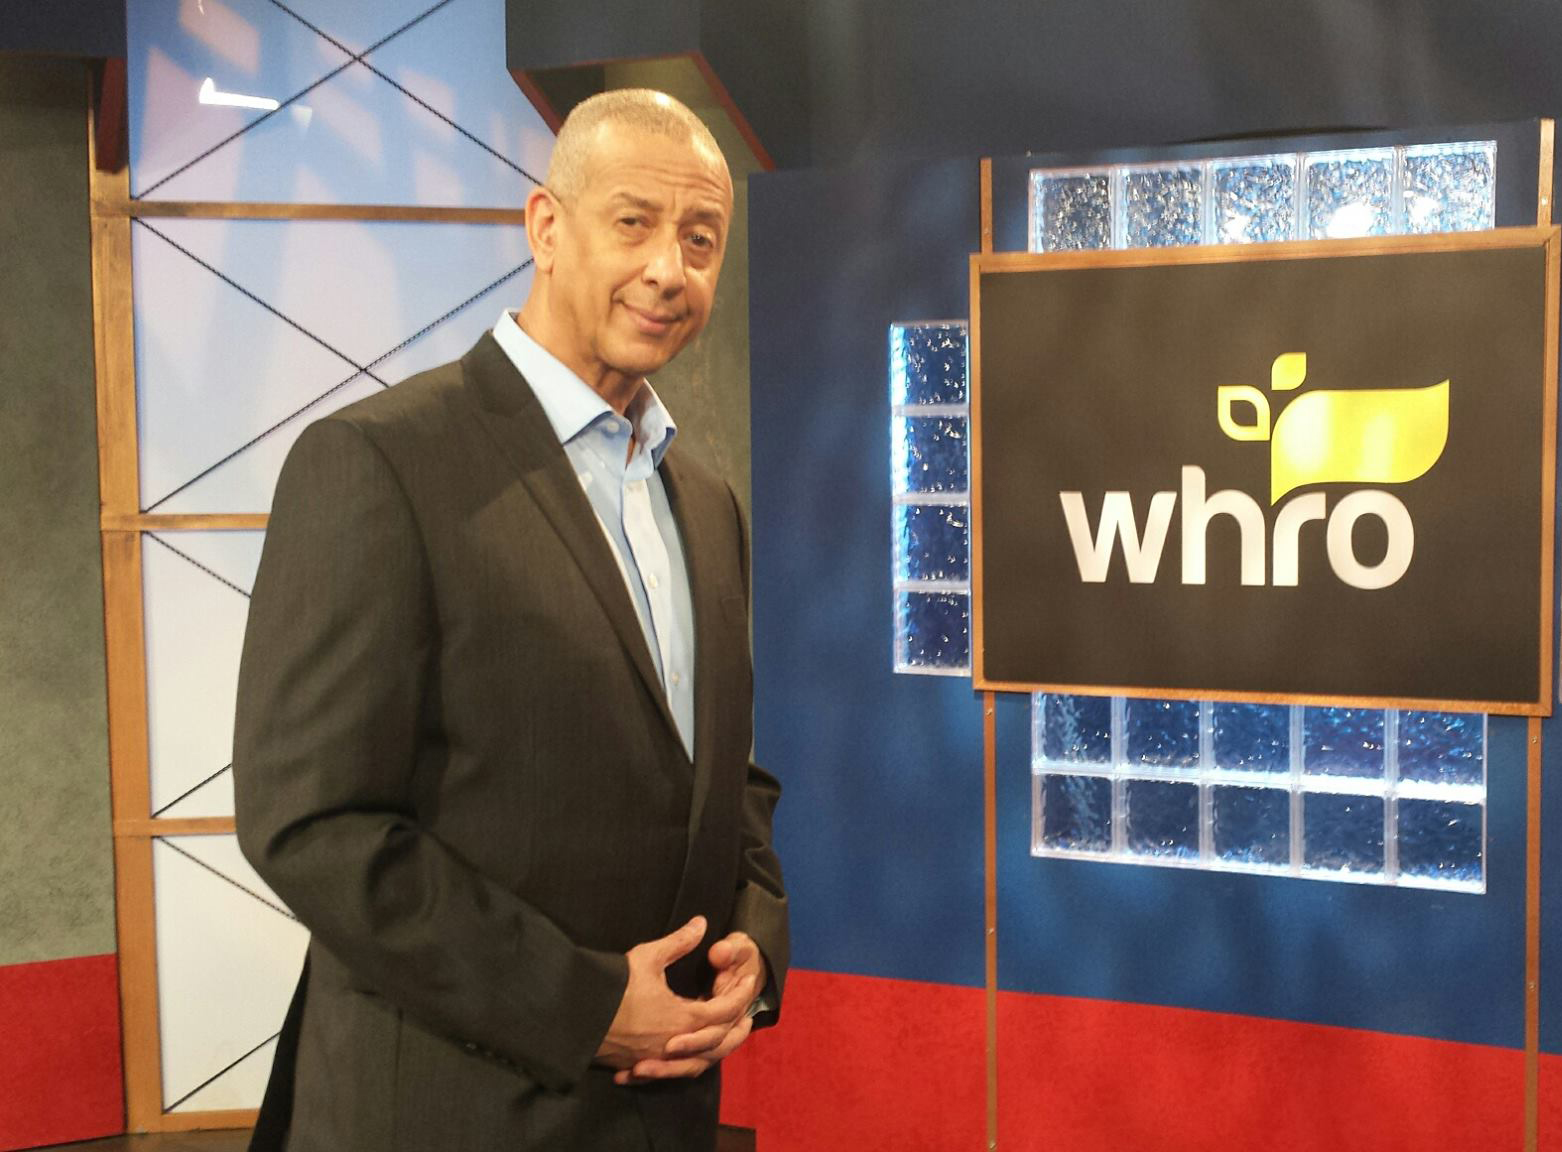 Jae Sinnett promoting a fundraiser for WHRO-TV 15